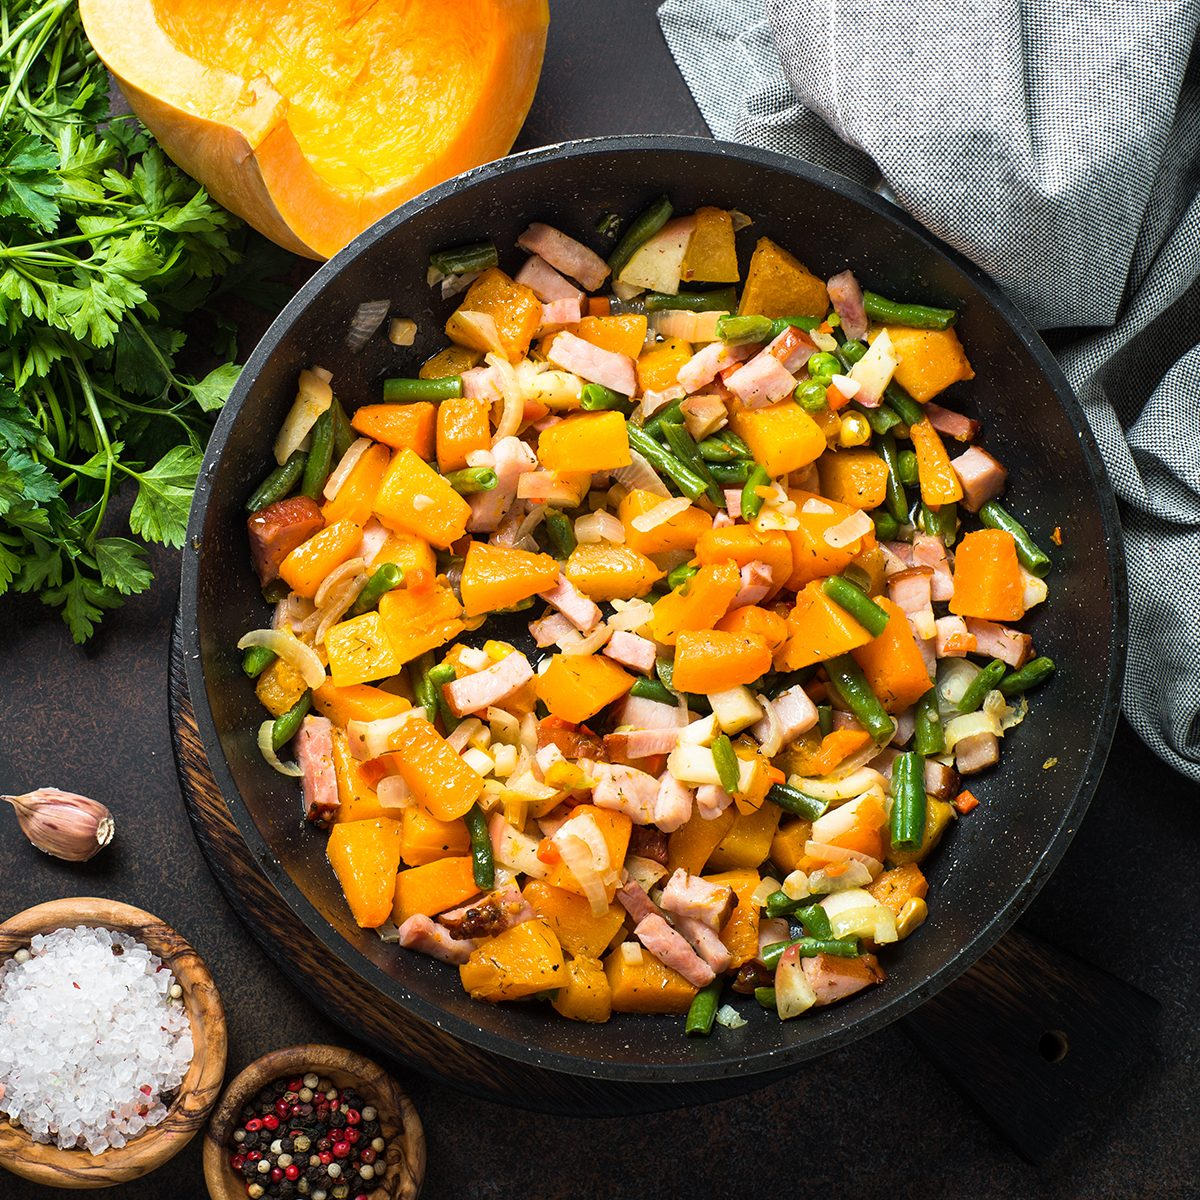 Pumpkin fried with vegetables and smoked meat.